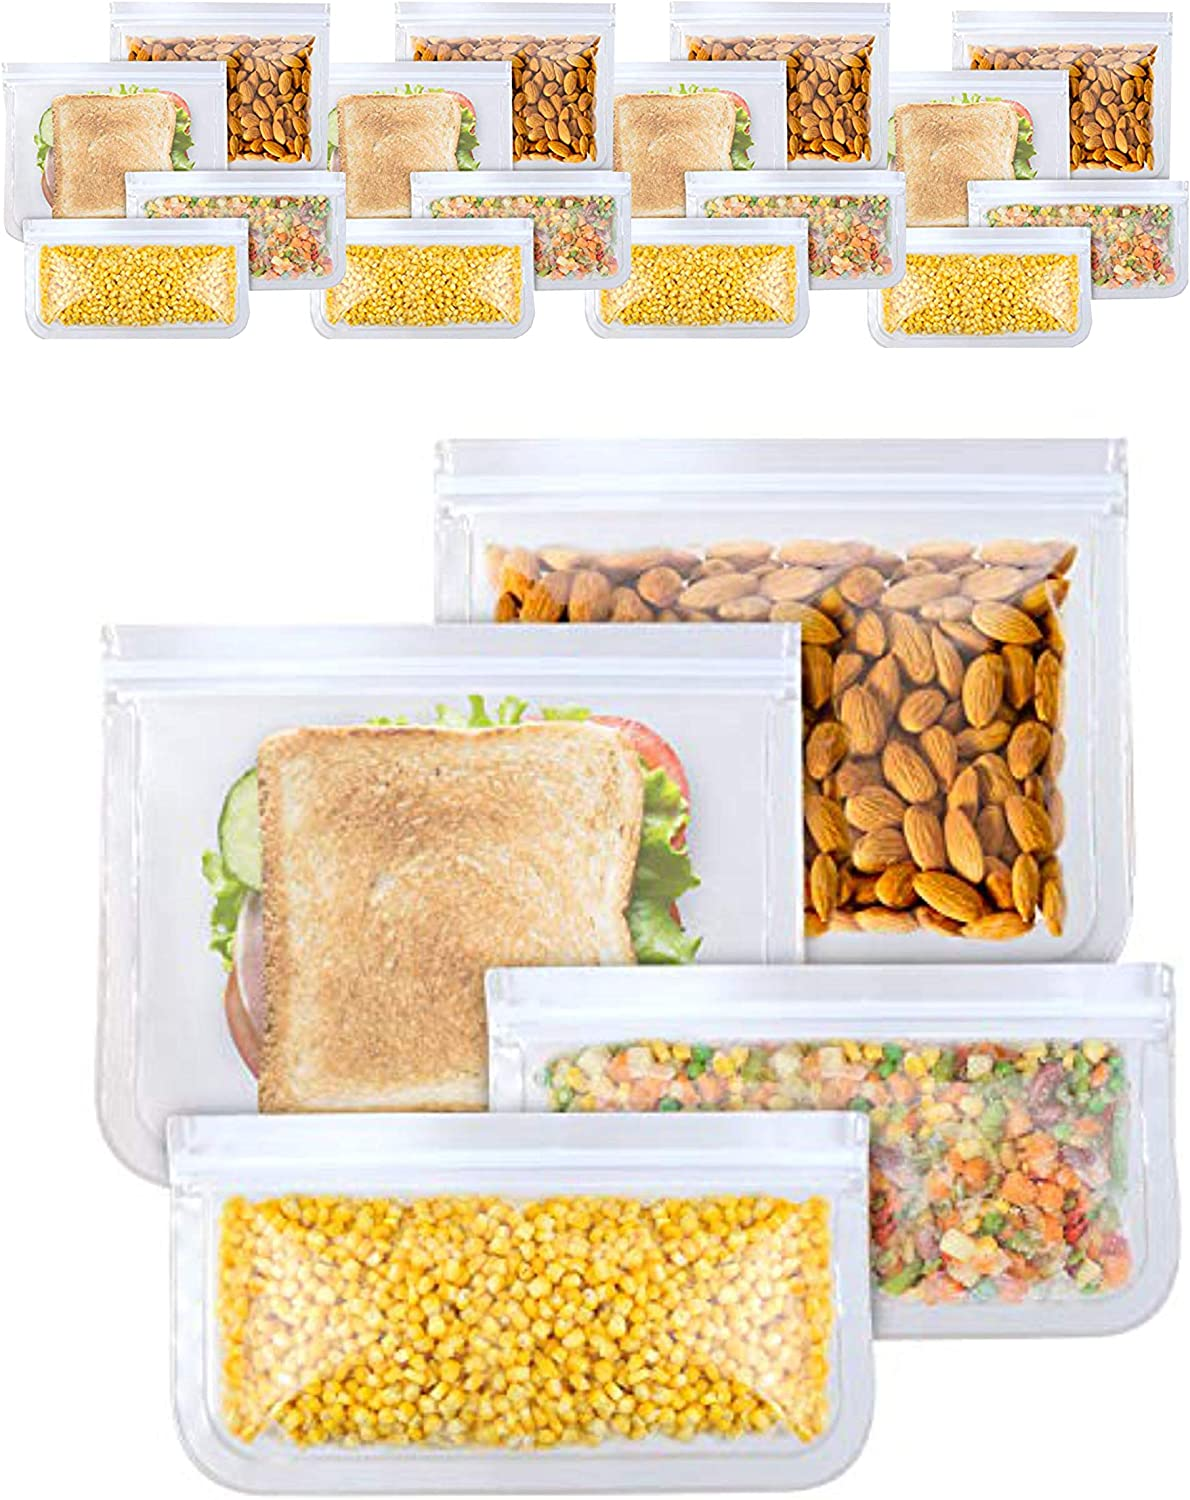 BBA SUNRISE | 15-Pack Reusable Storage Bags, BPA Food Grade Ziplock Bags, Leakproof and Fresh for Snacks, Fruits, Lunch, Sandwiches, Washable and Reusable, Eco-Friendly, Durable and Easy To Clean